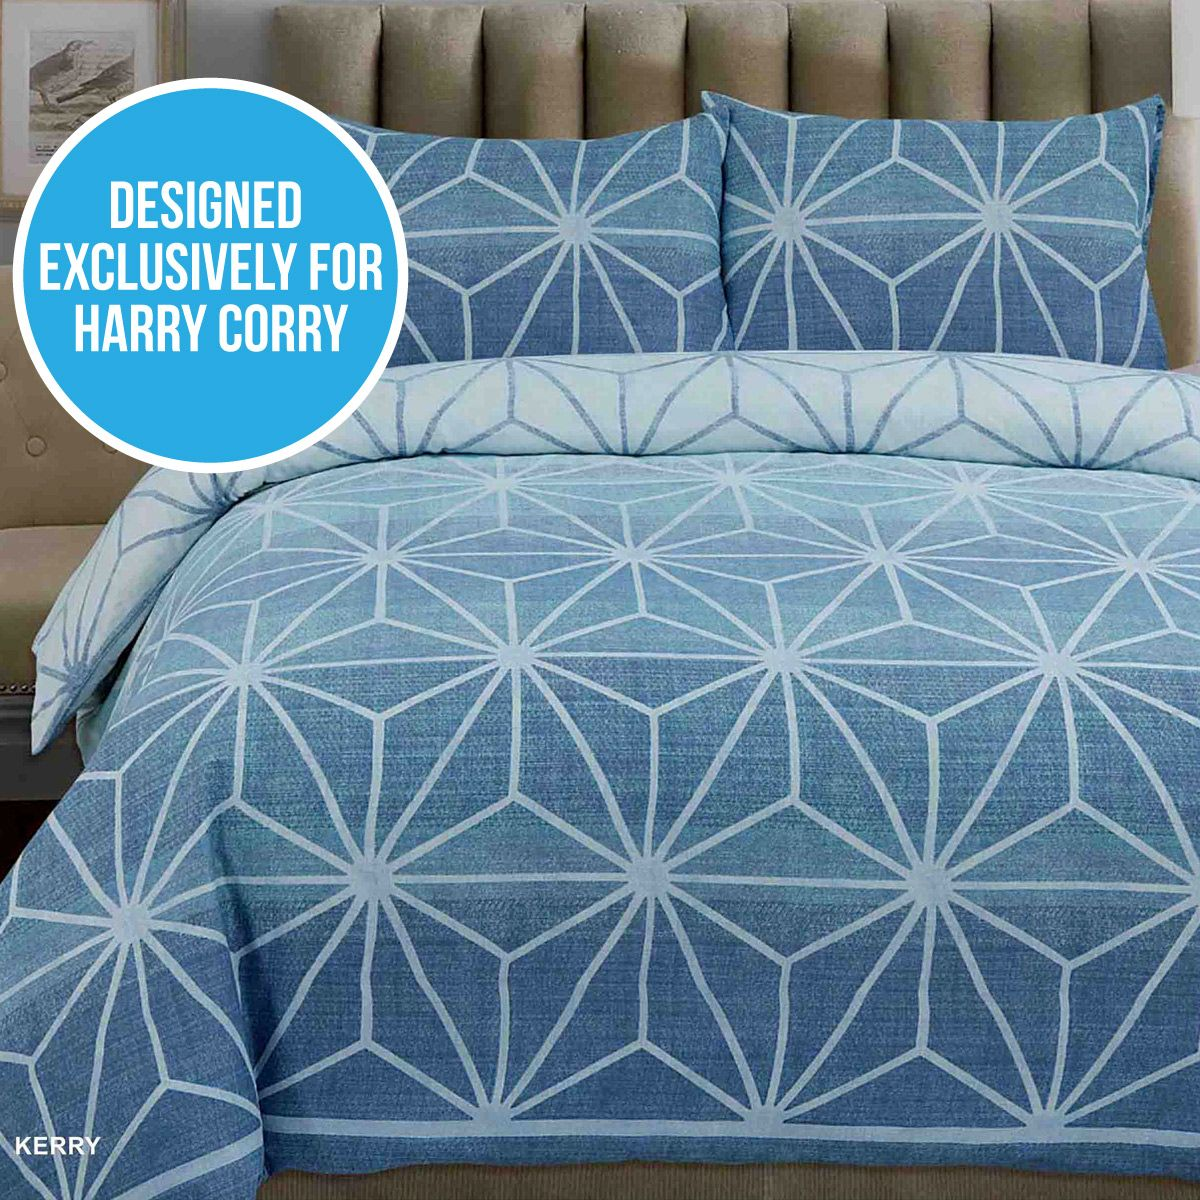 Windsor teal eyelet curtains harry corry limited - Get Your Shape On With This Harry Corry Exclusive The Kerry Blue Cotton Rich Duvet Set Features A White Contemporary Geometric Pattern On A Denim Effect